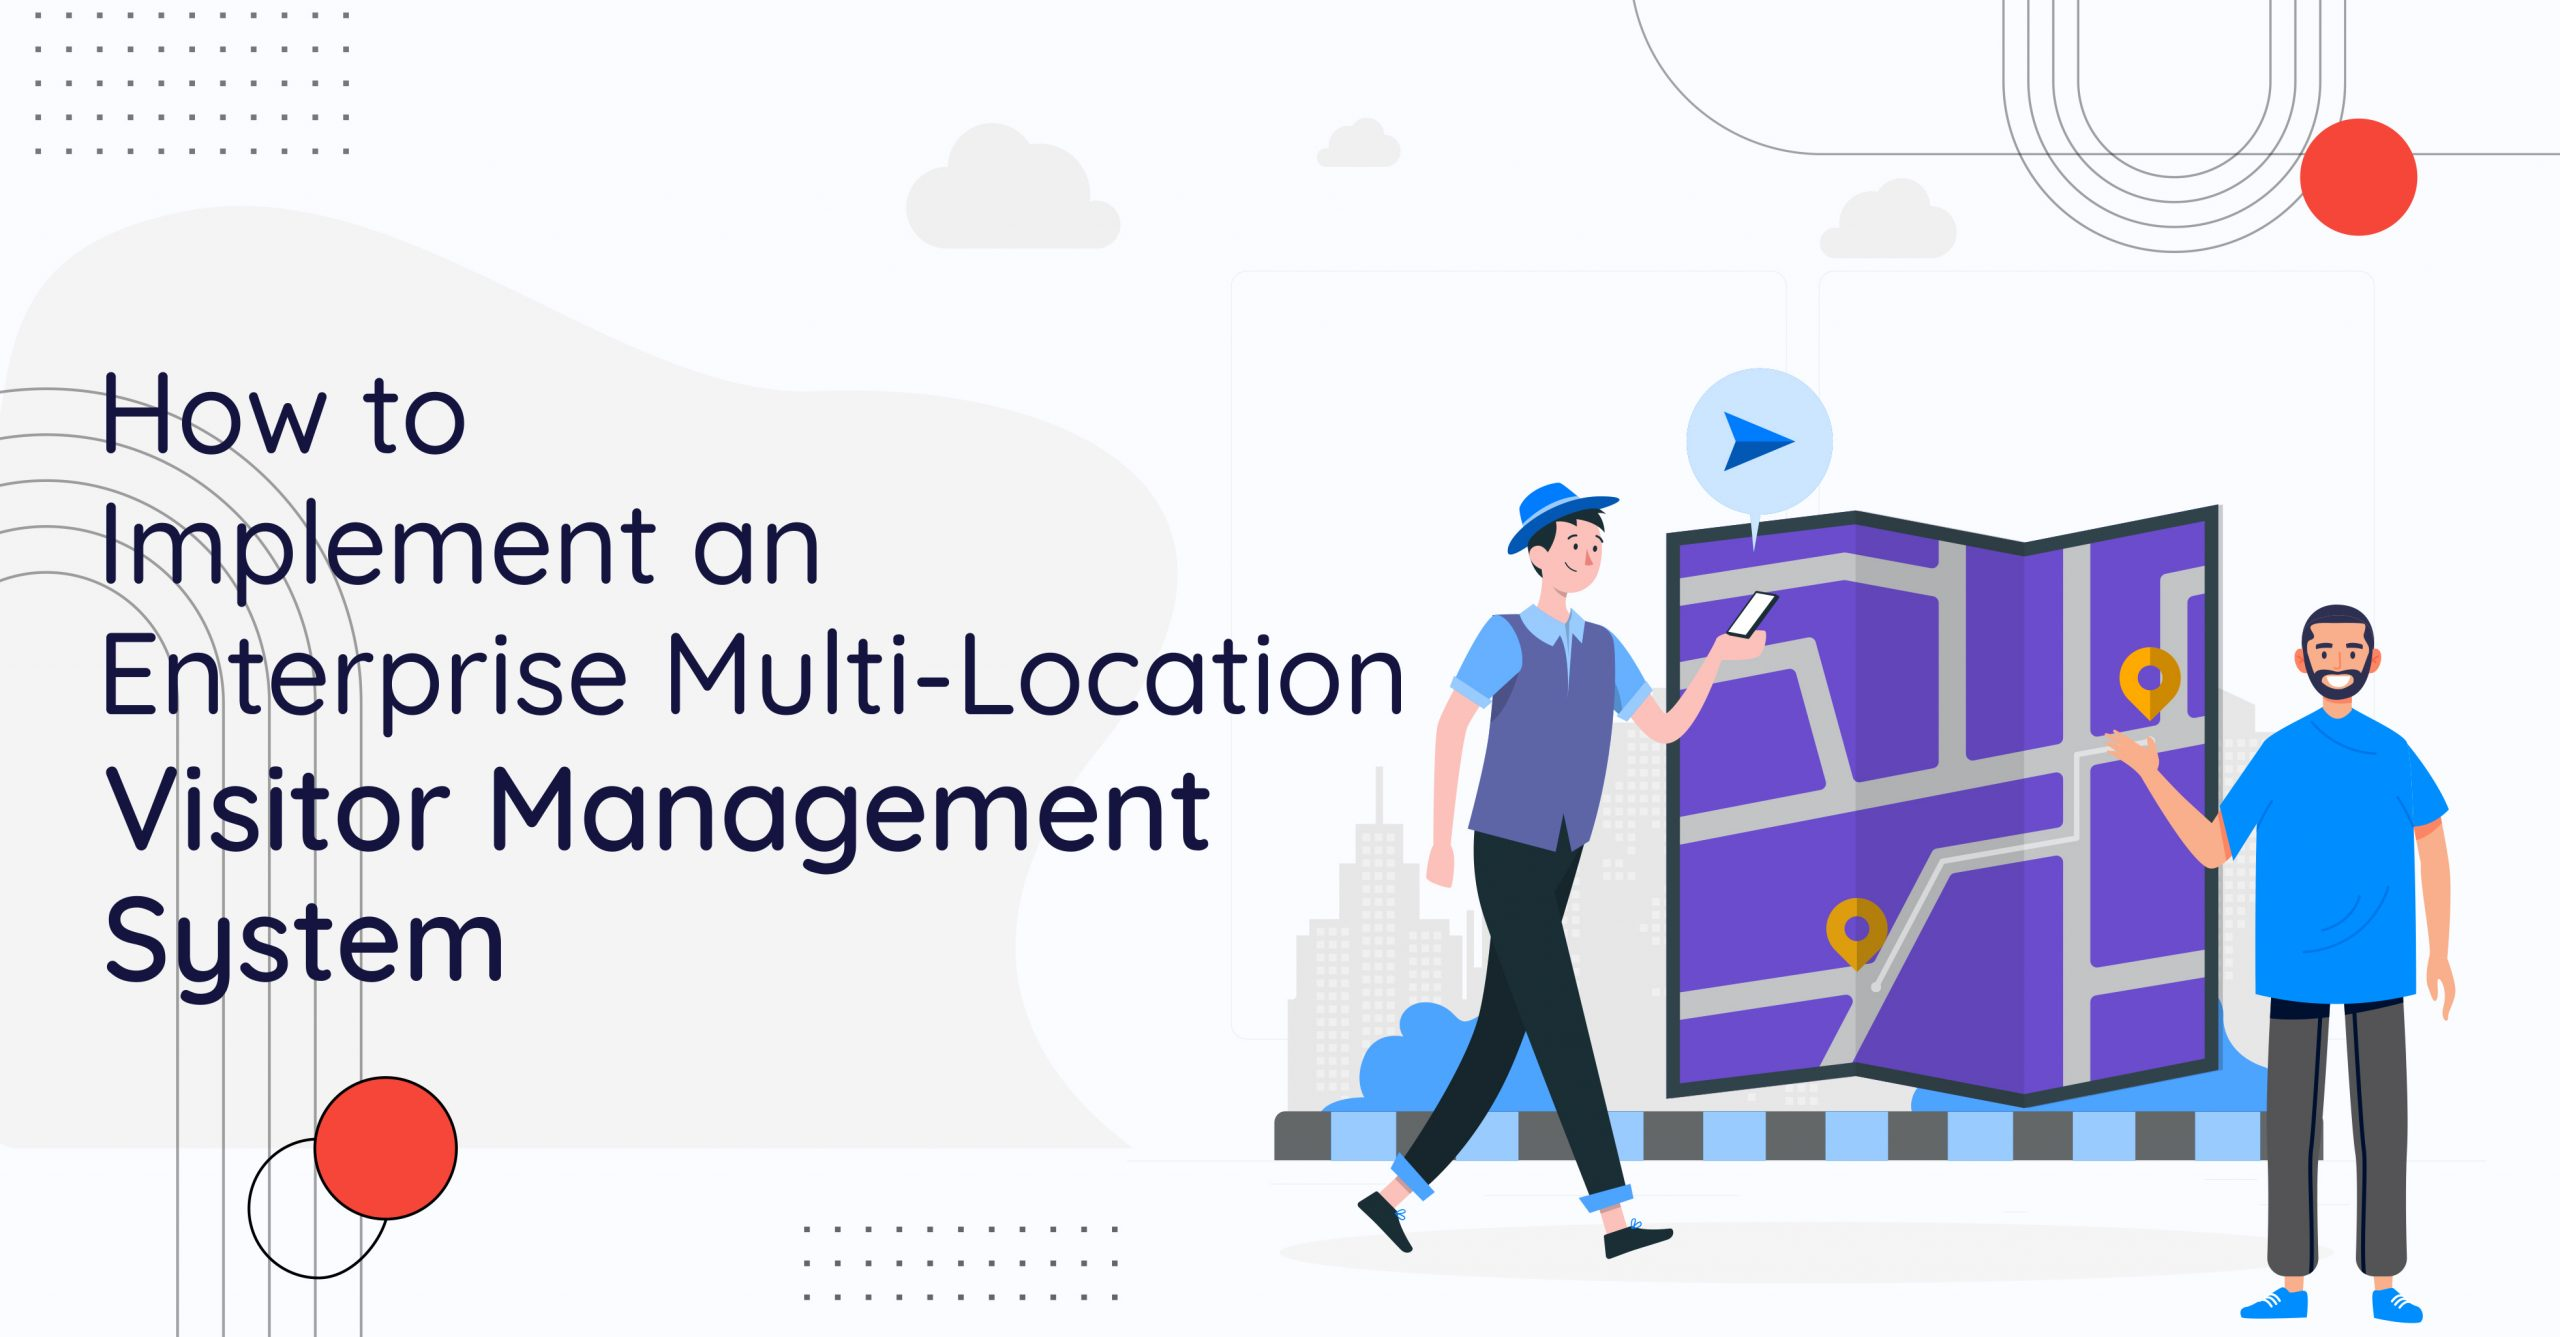 How to Implement an Enterprise Multi-Location Visitor Management System